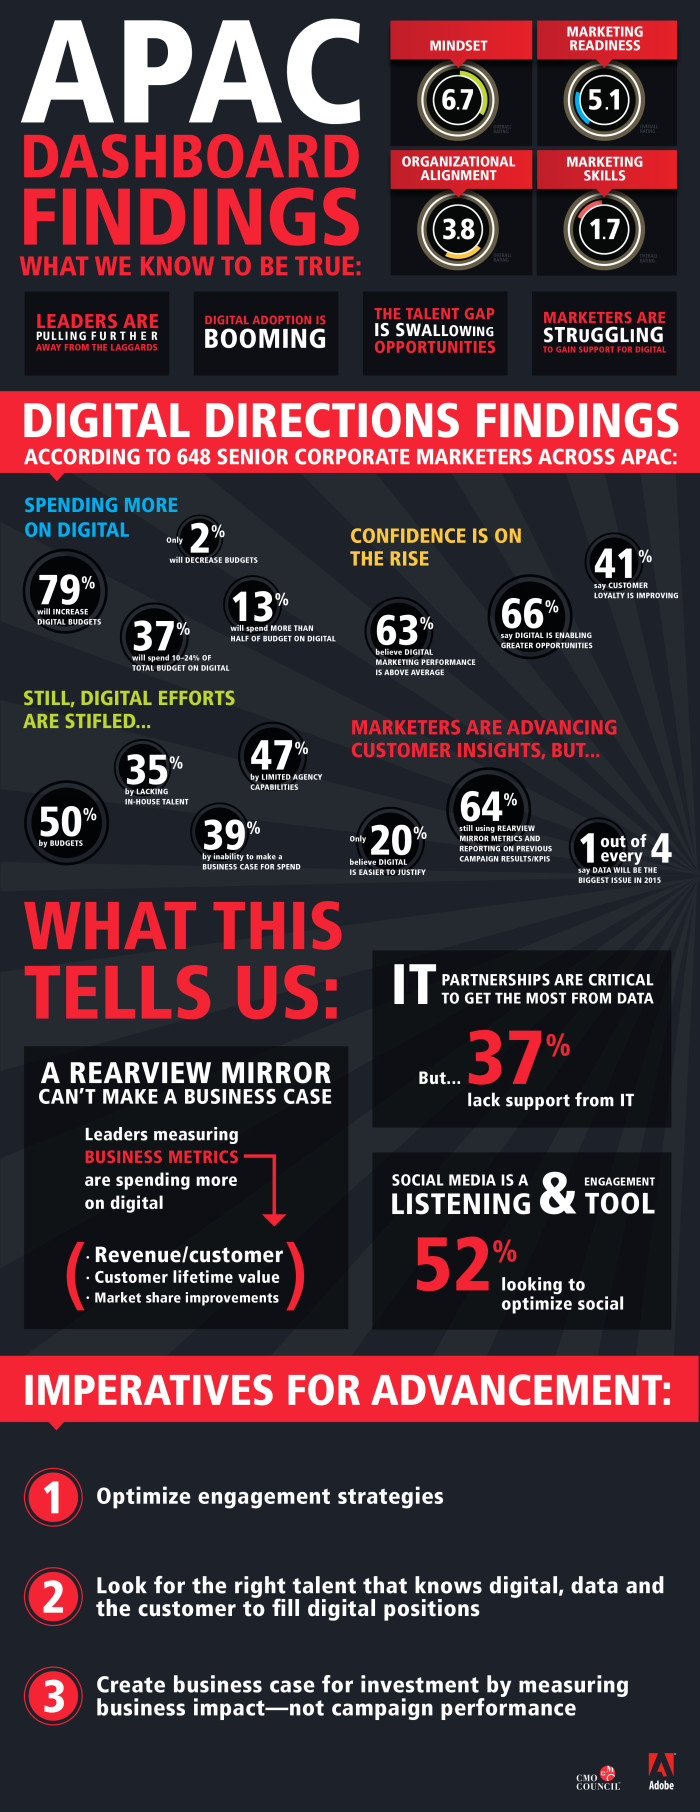 Adobe_APAC_infographic_FINAL_2015